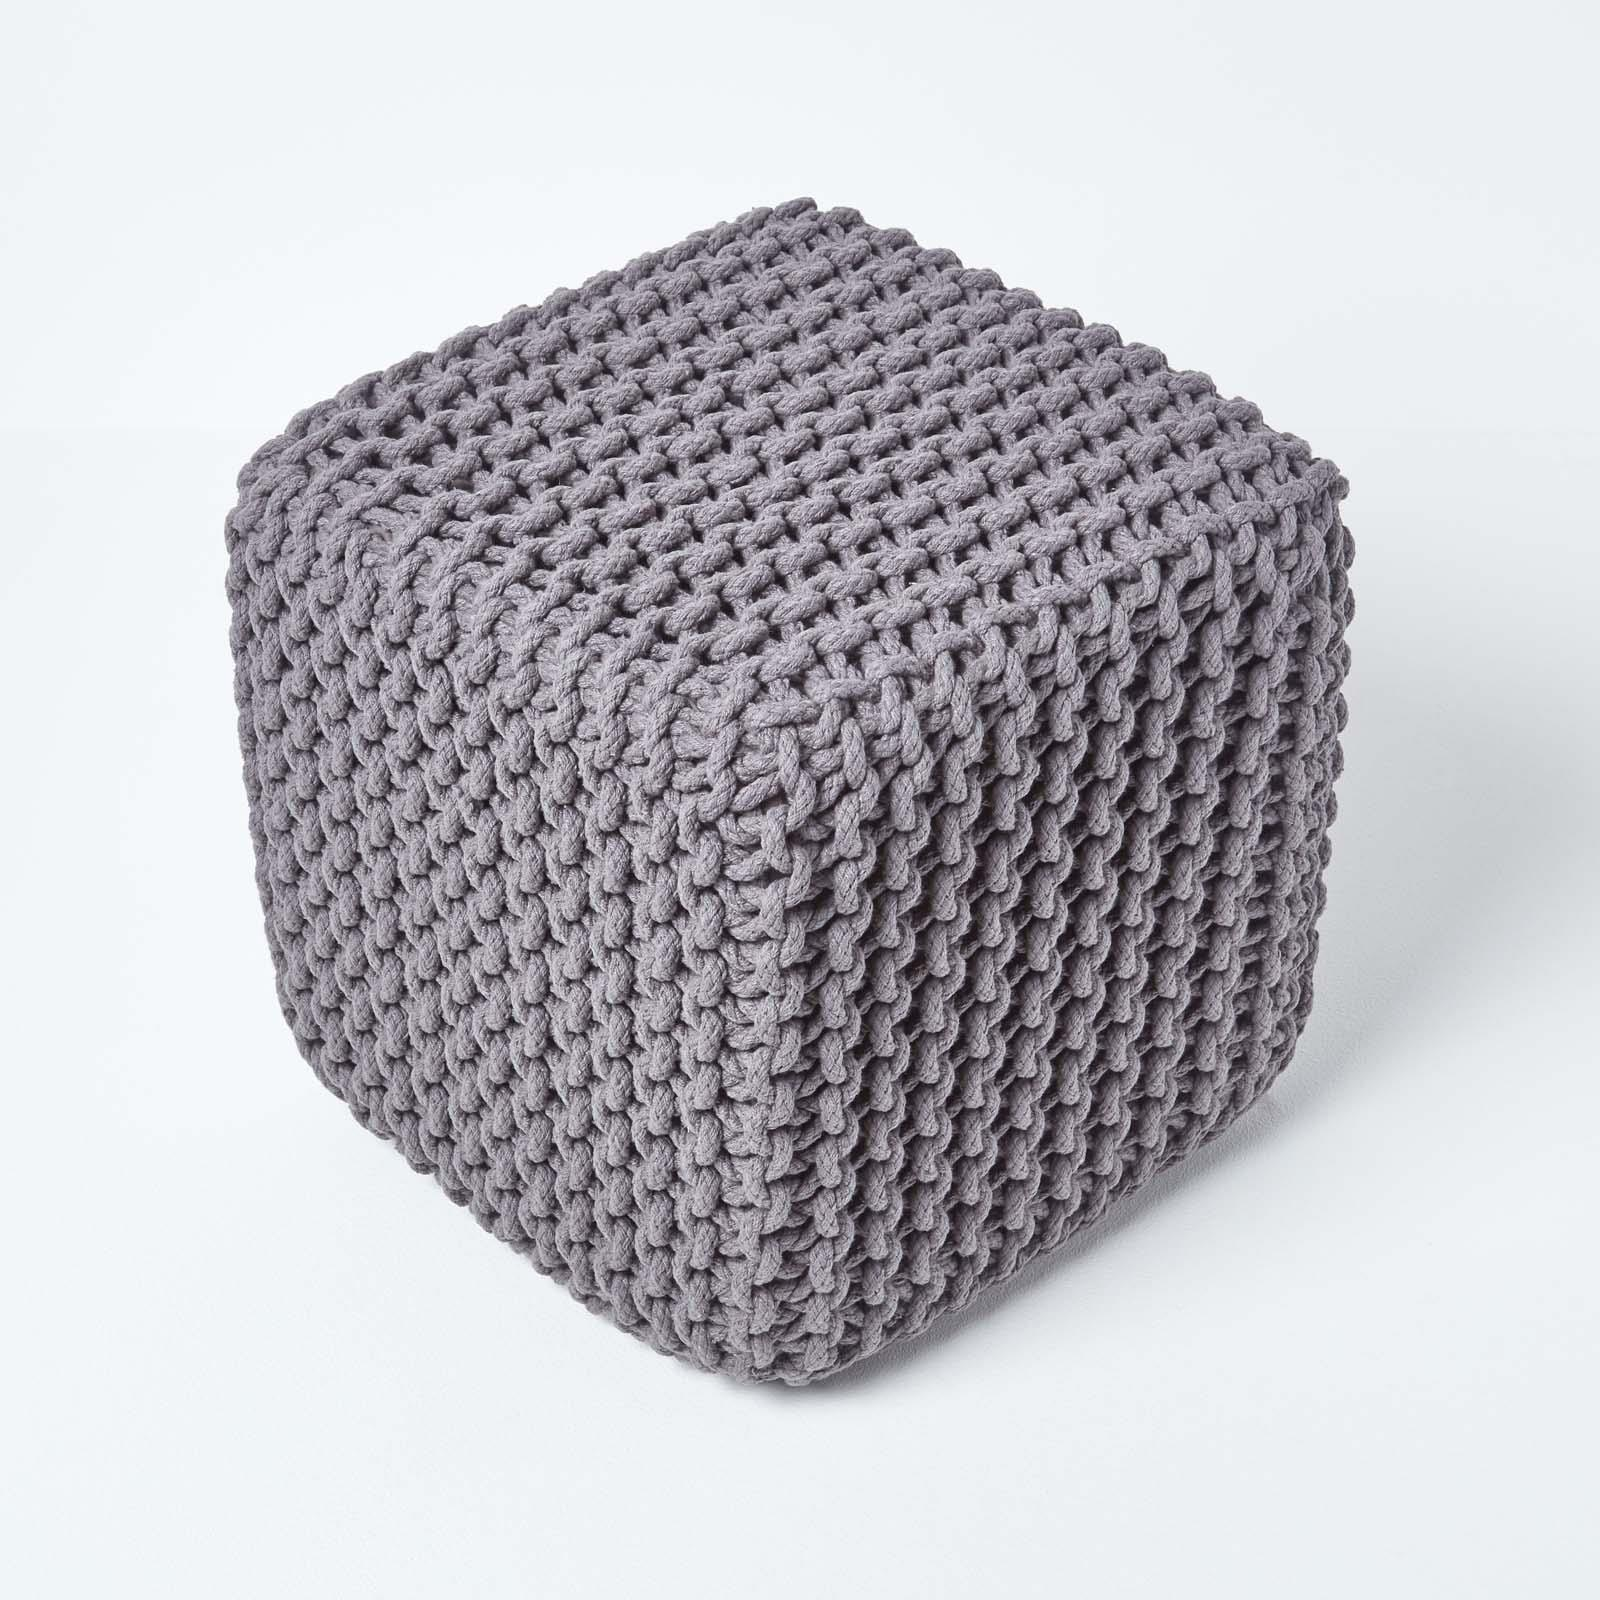 Hand-Knitted-100-Cotton-Pouffes-Round-Sphere-Or-Cube-Square-Chunky-Footstools thumbnail 53